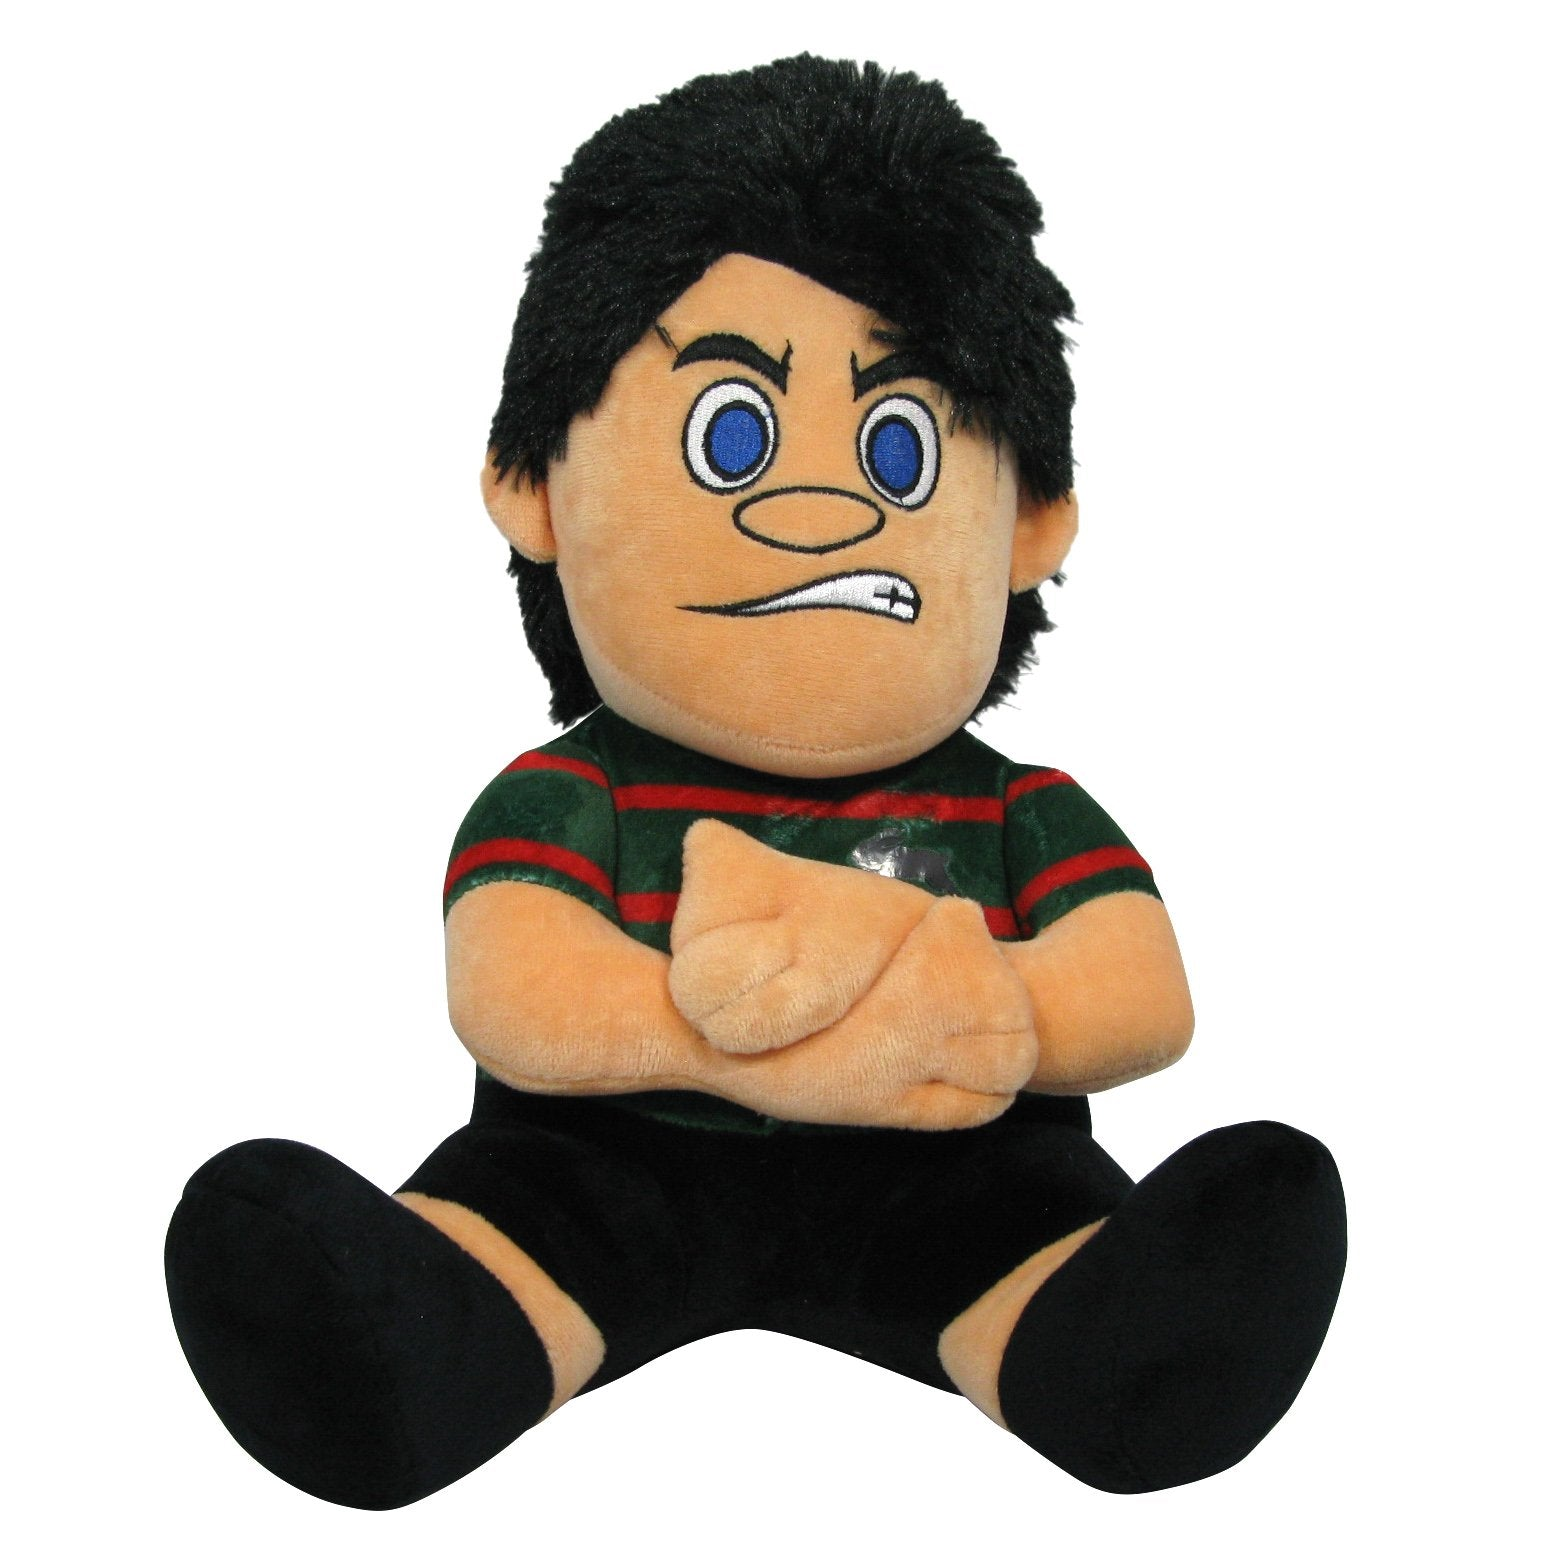 NRL PLAYER DOOR STOP RABBITOHS